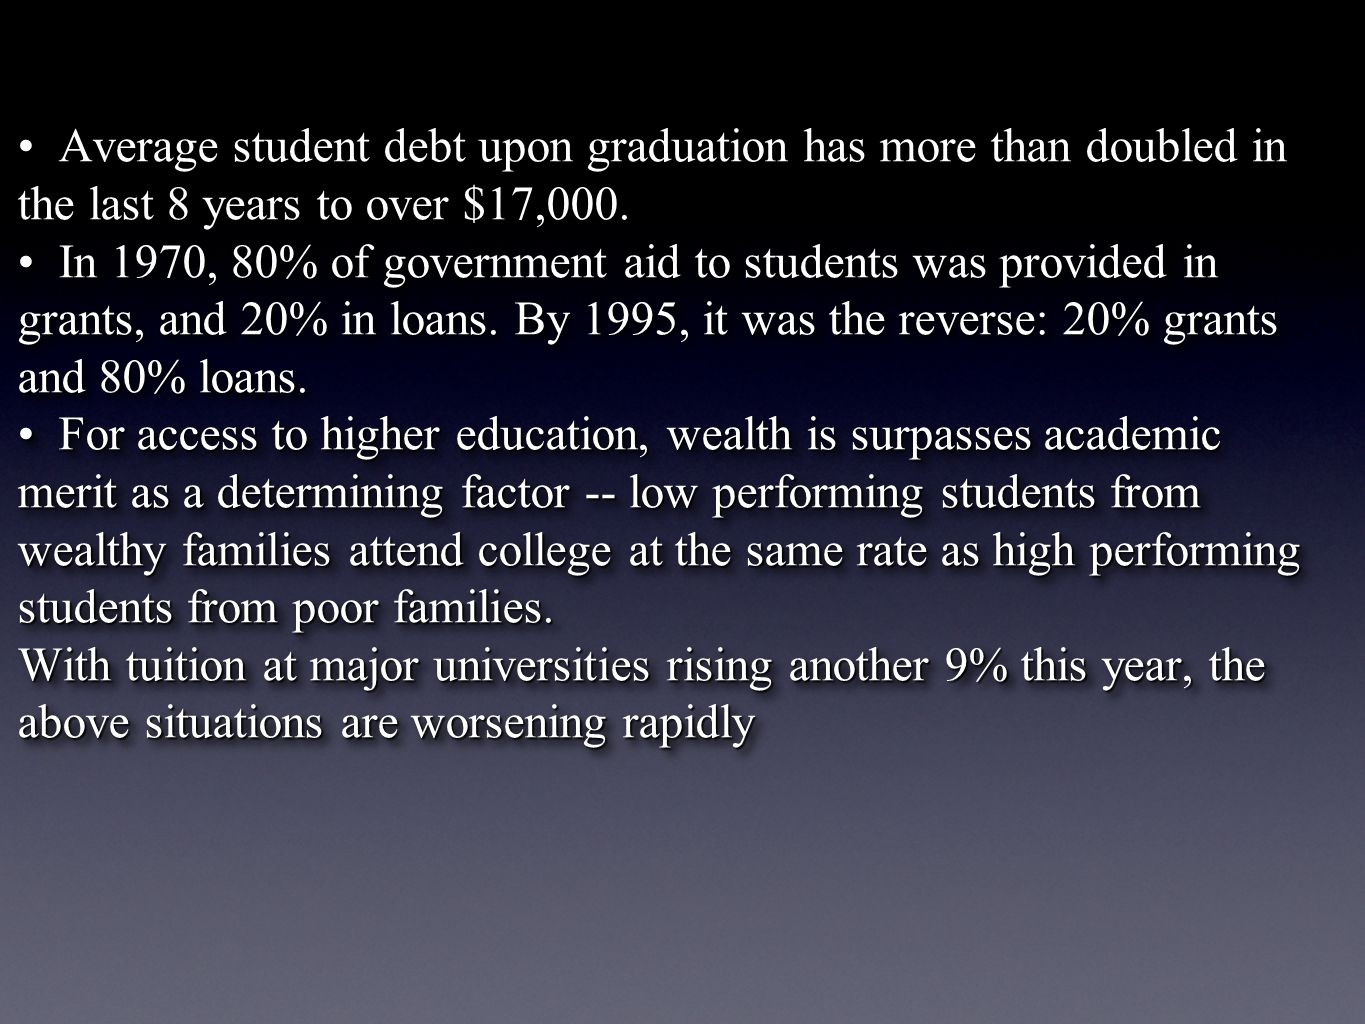 Average student debt upon graduation has more than doubled in the last 8 years to over $17,000.